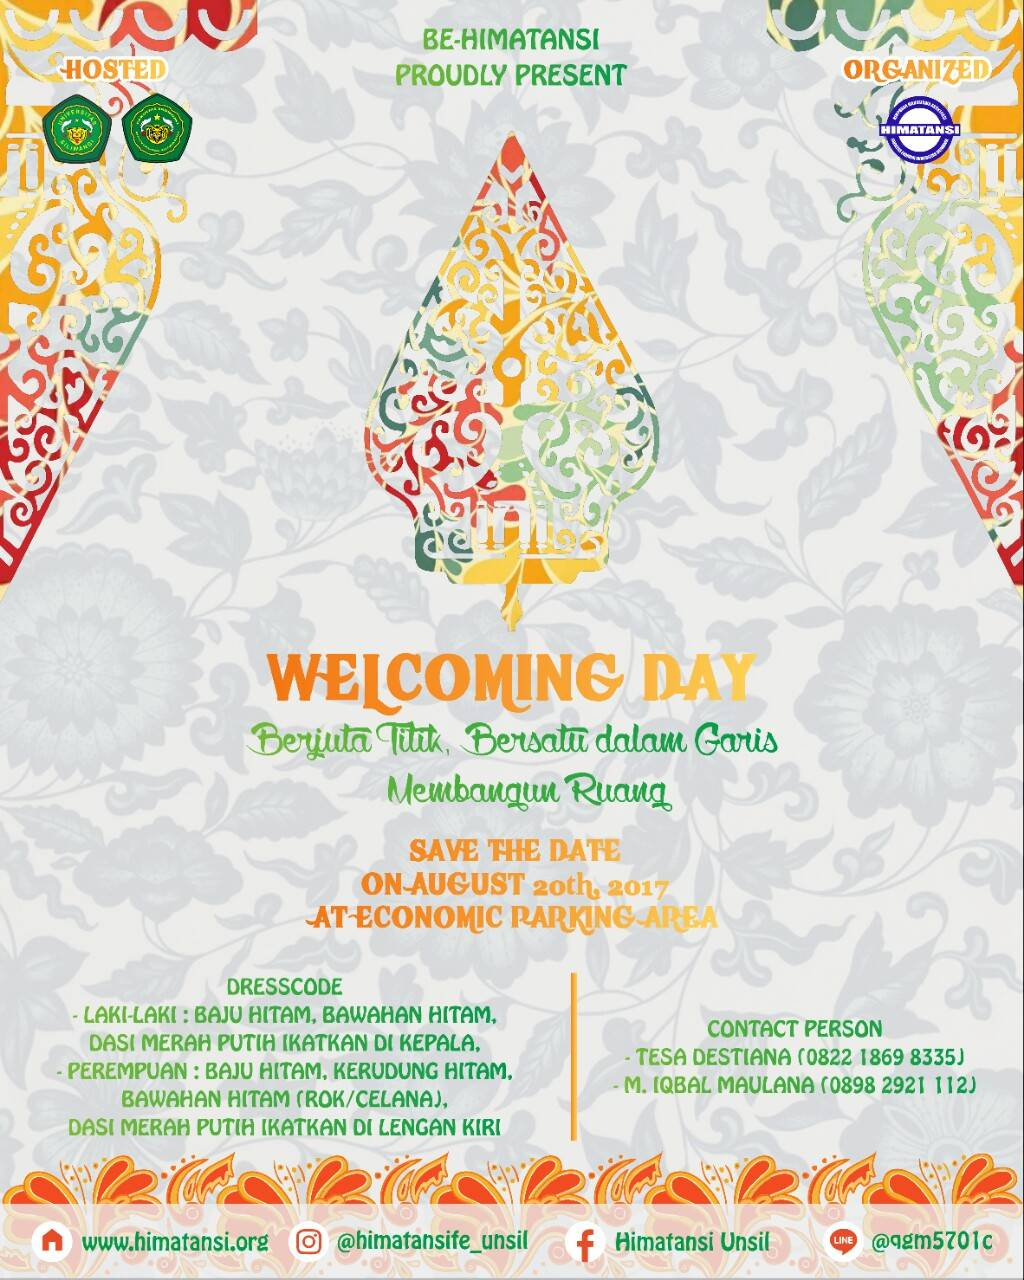 WELCOMING DAY 2017